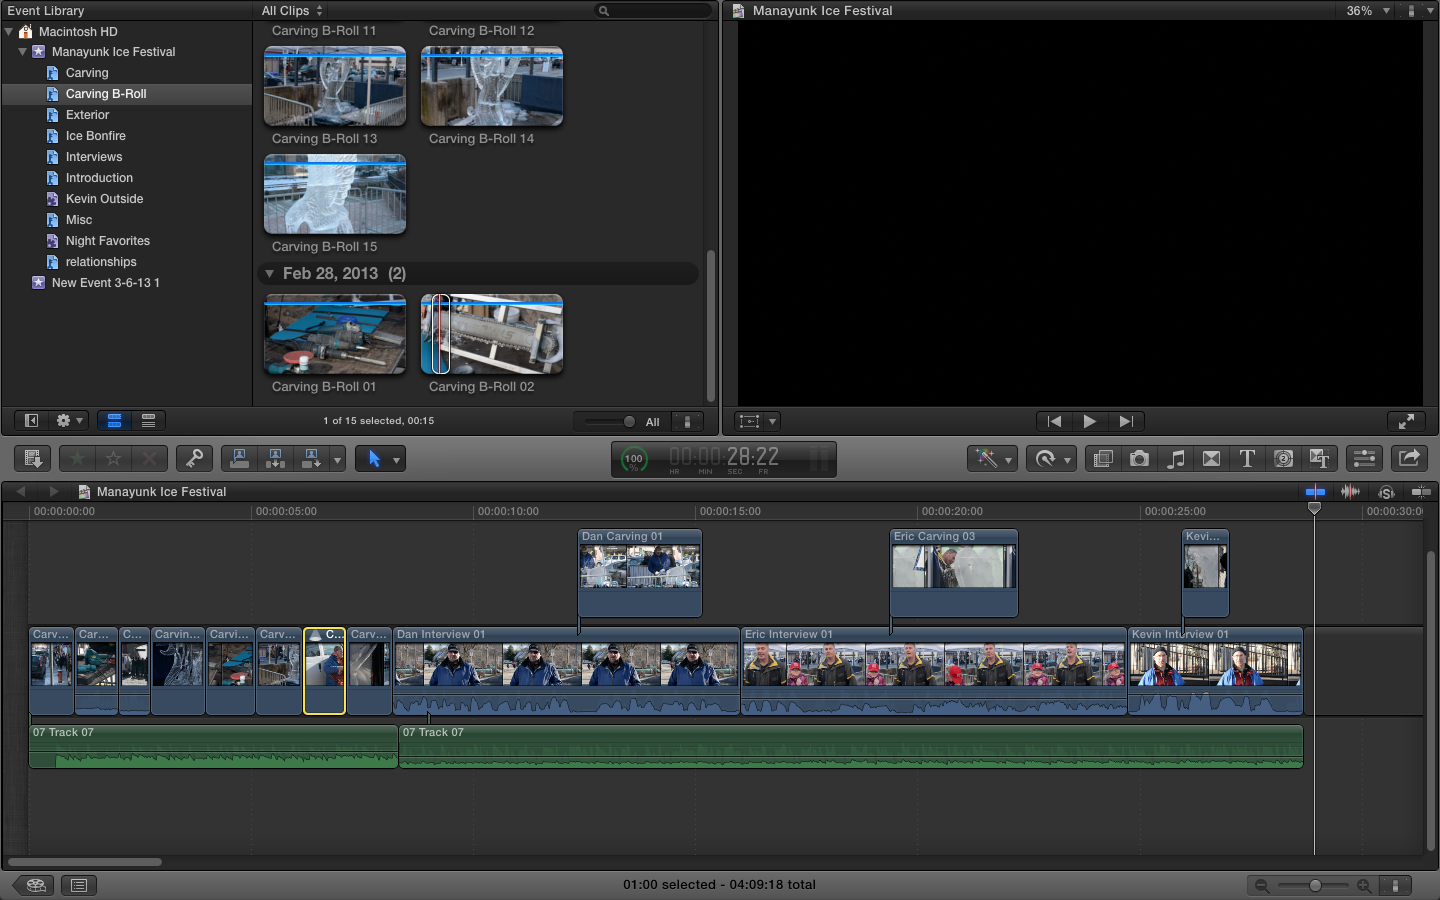 Manayunk Ice Festival ( :30 Rough Cut) - image 1 - student project